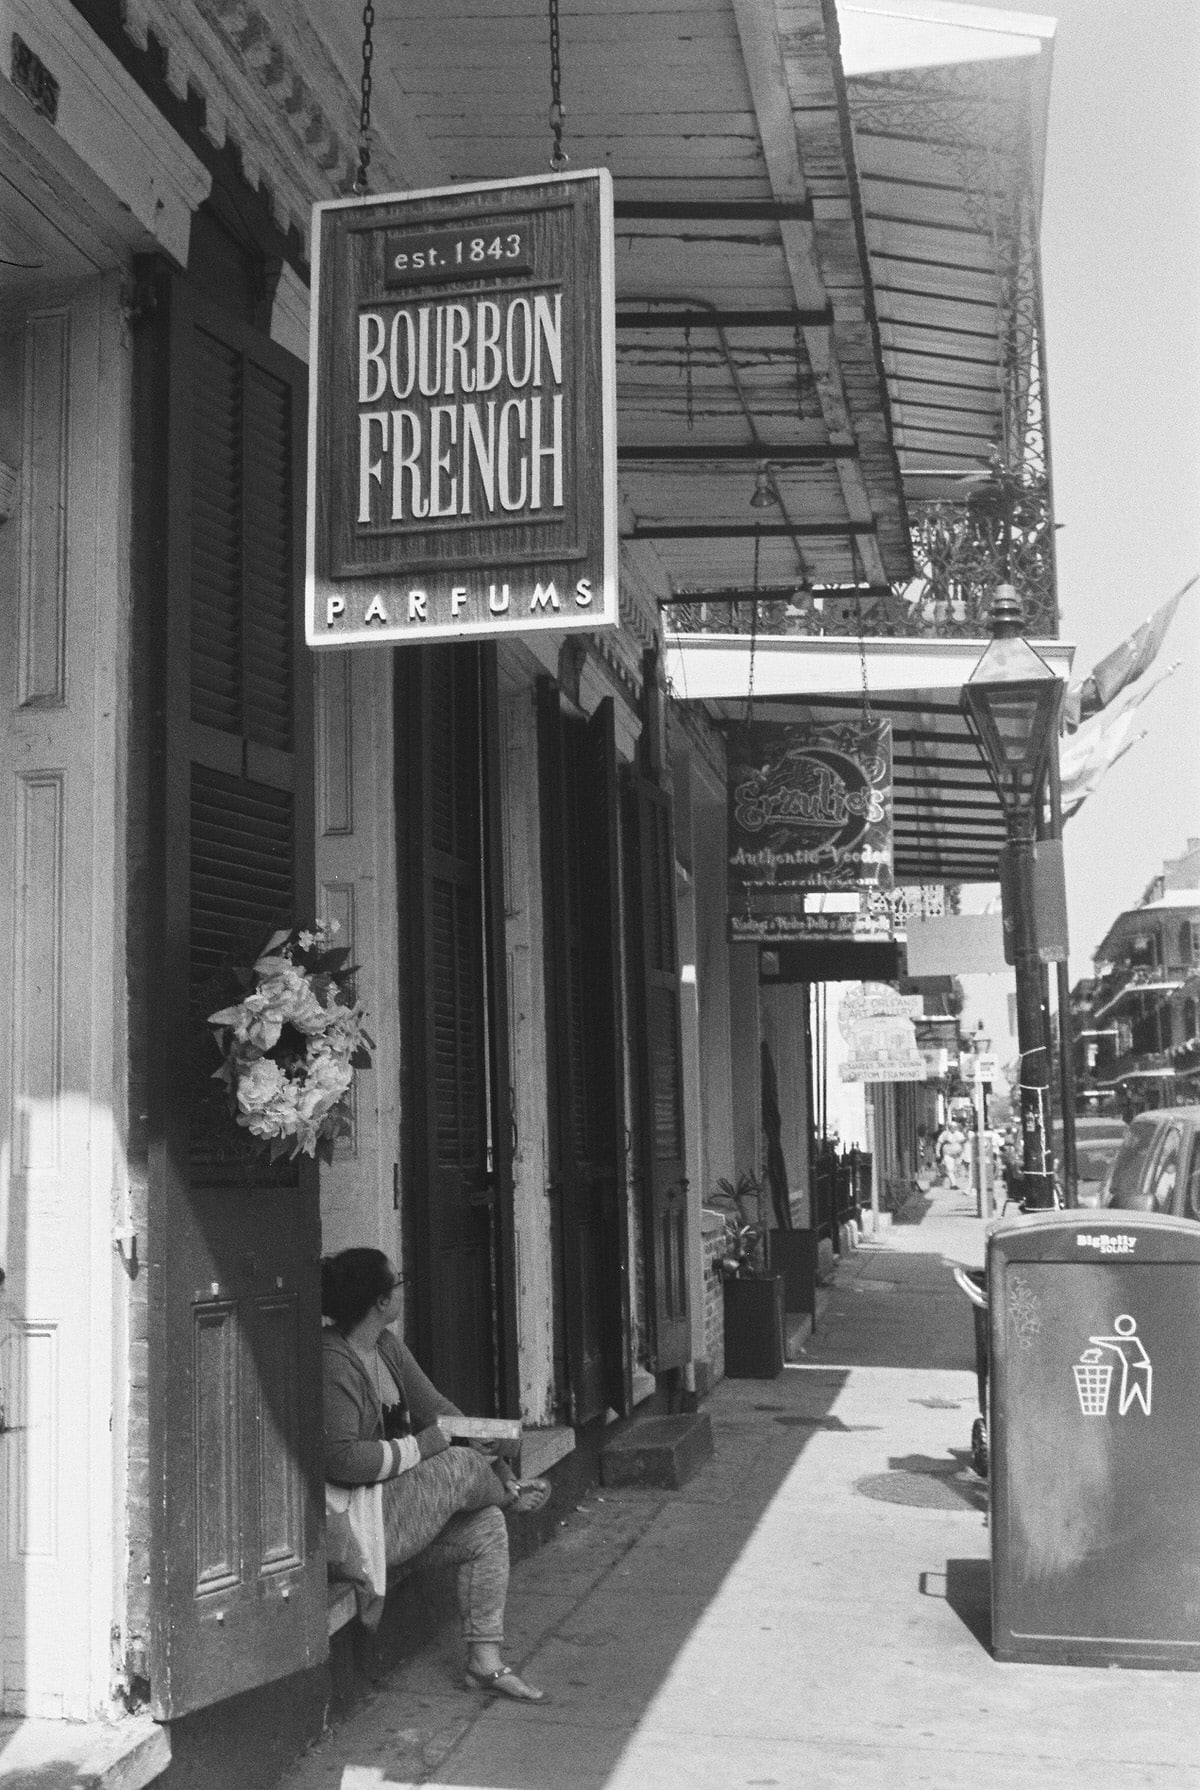 New-Orleans-Louisiana-black-and-white-fine-art-photography-by-Studio-L-photographer-Laura-Schneider-_017014